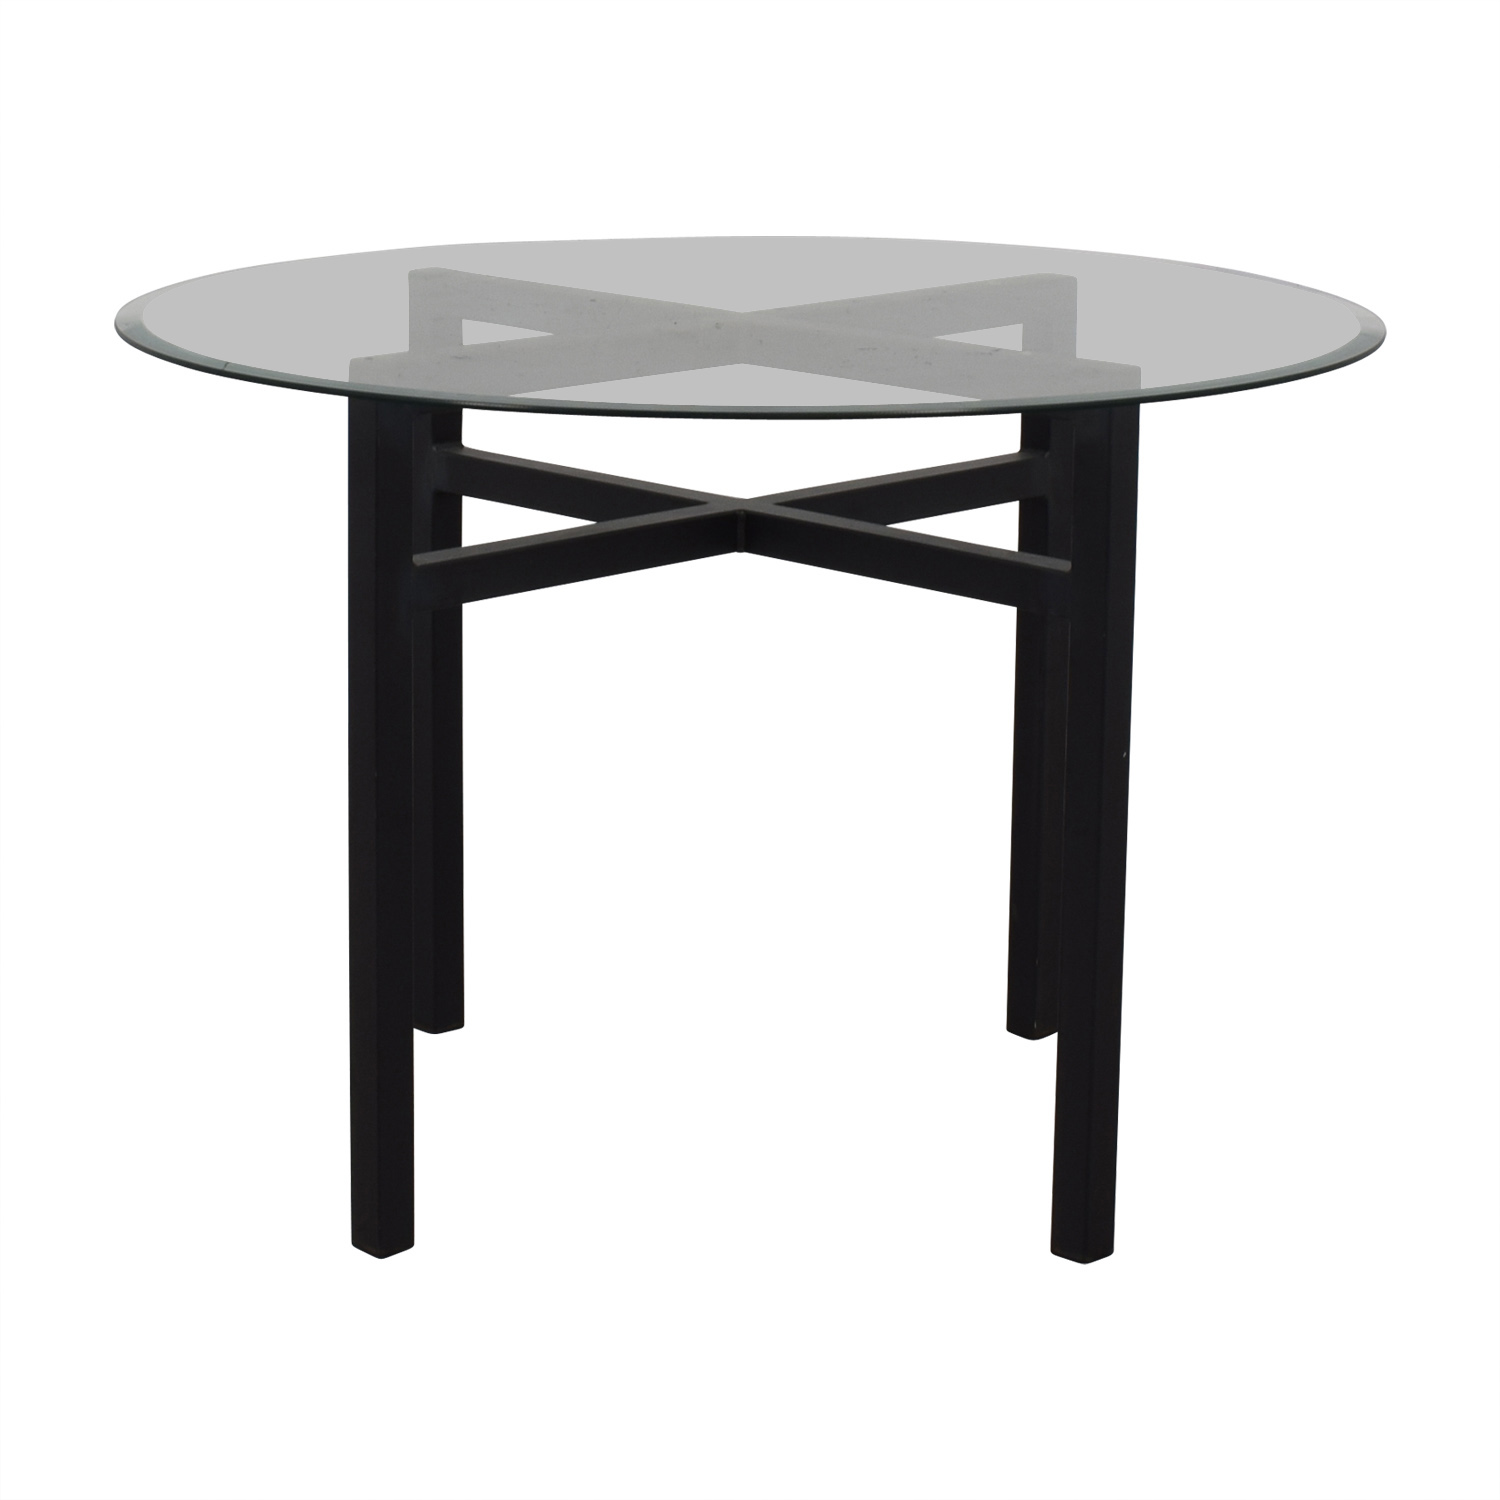 Room & Board Room & Board Benson Round Glass Top Dining Table price